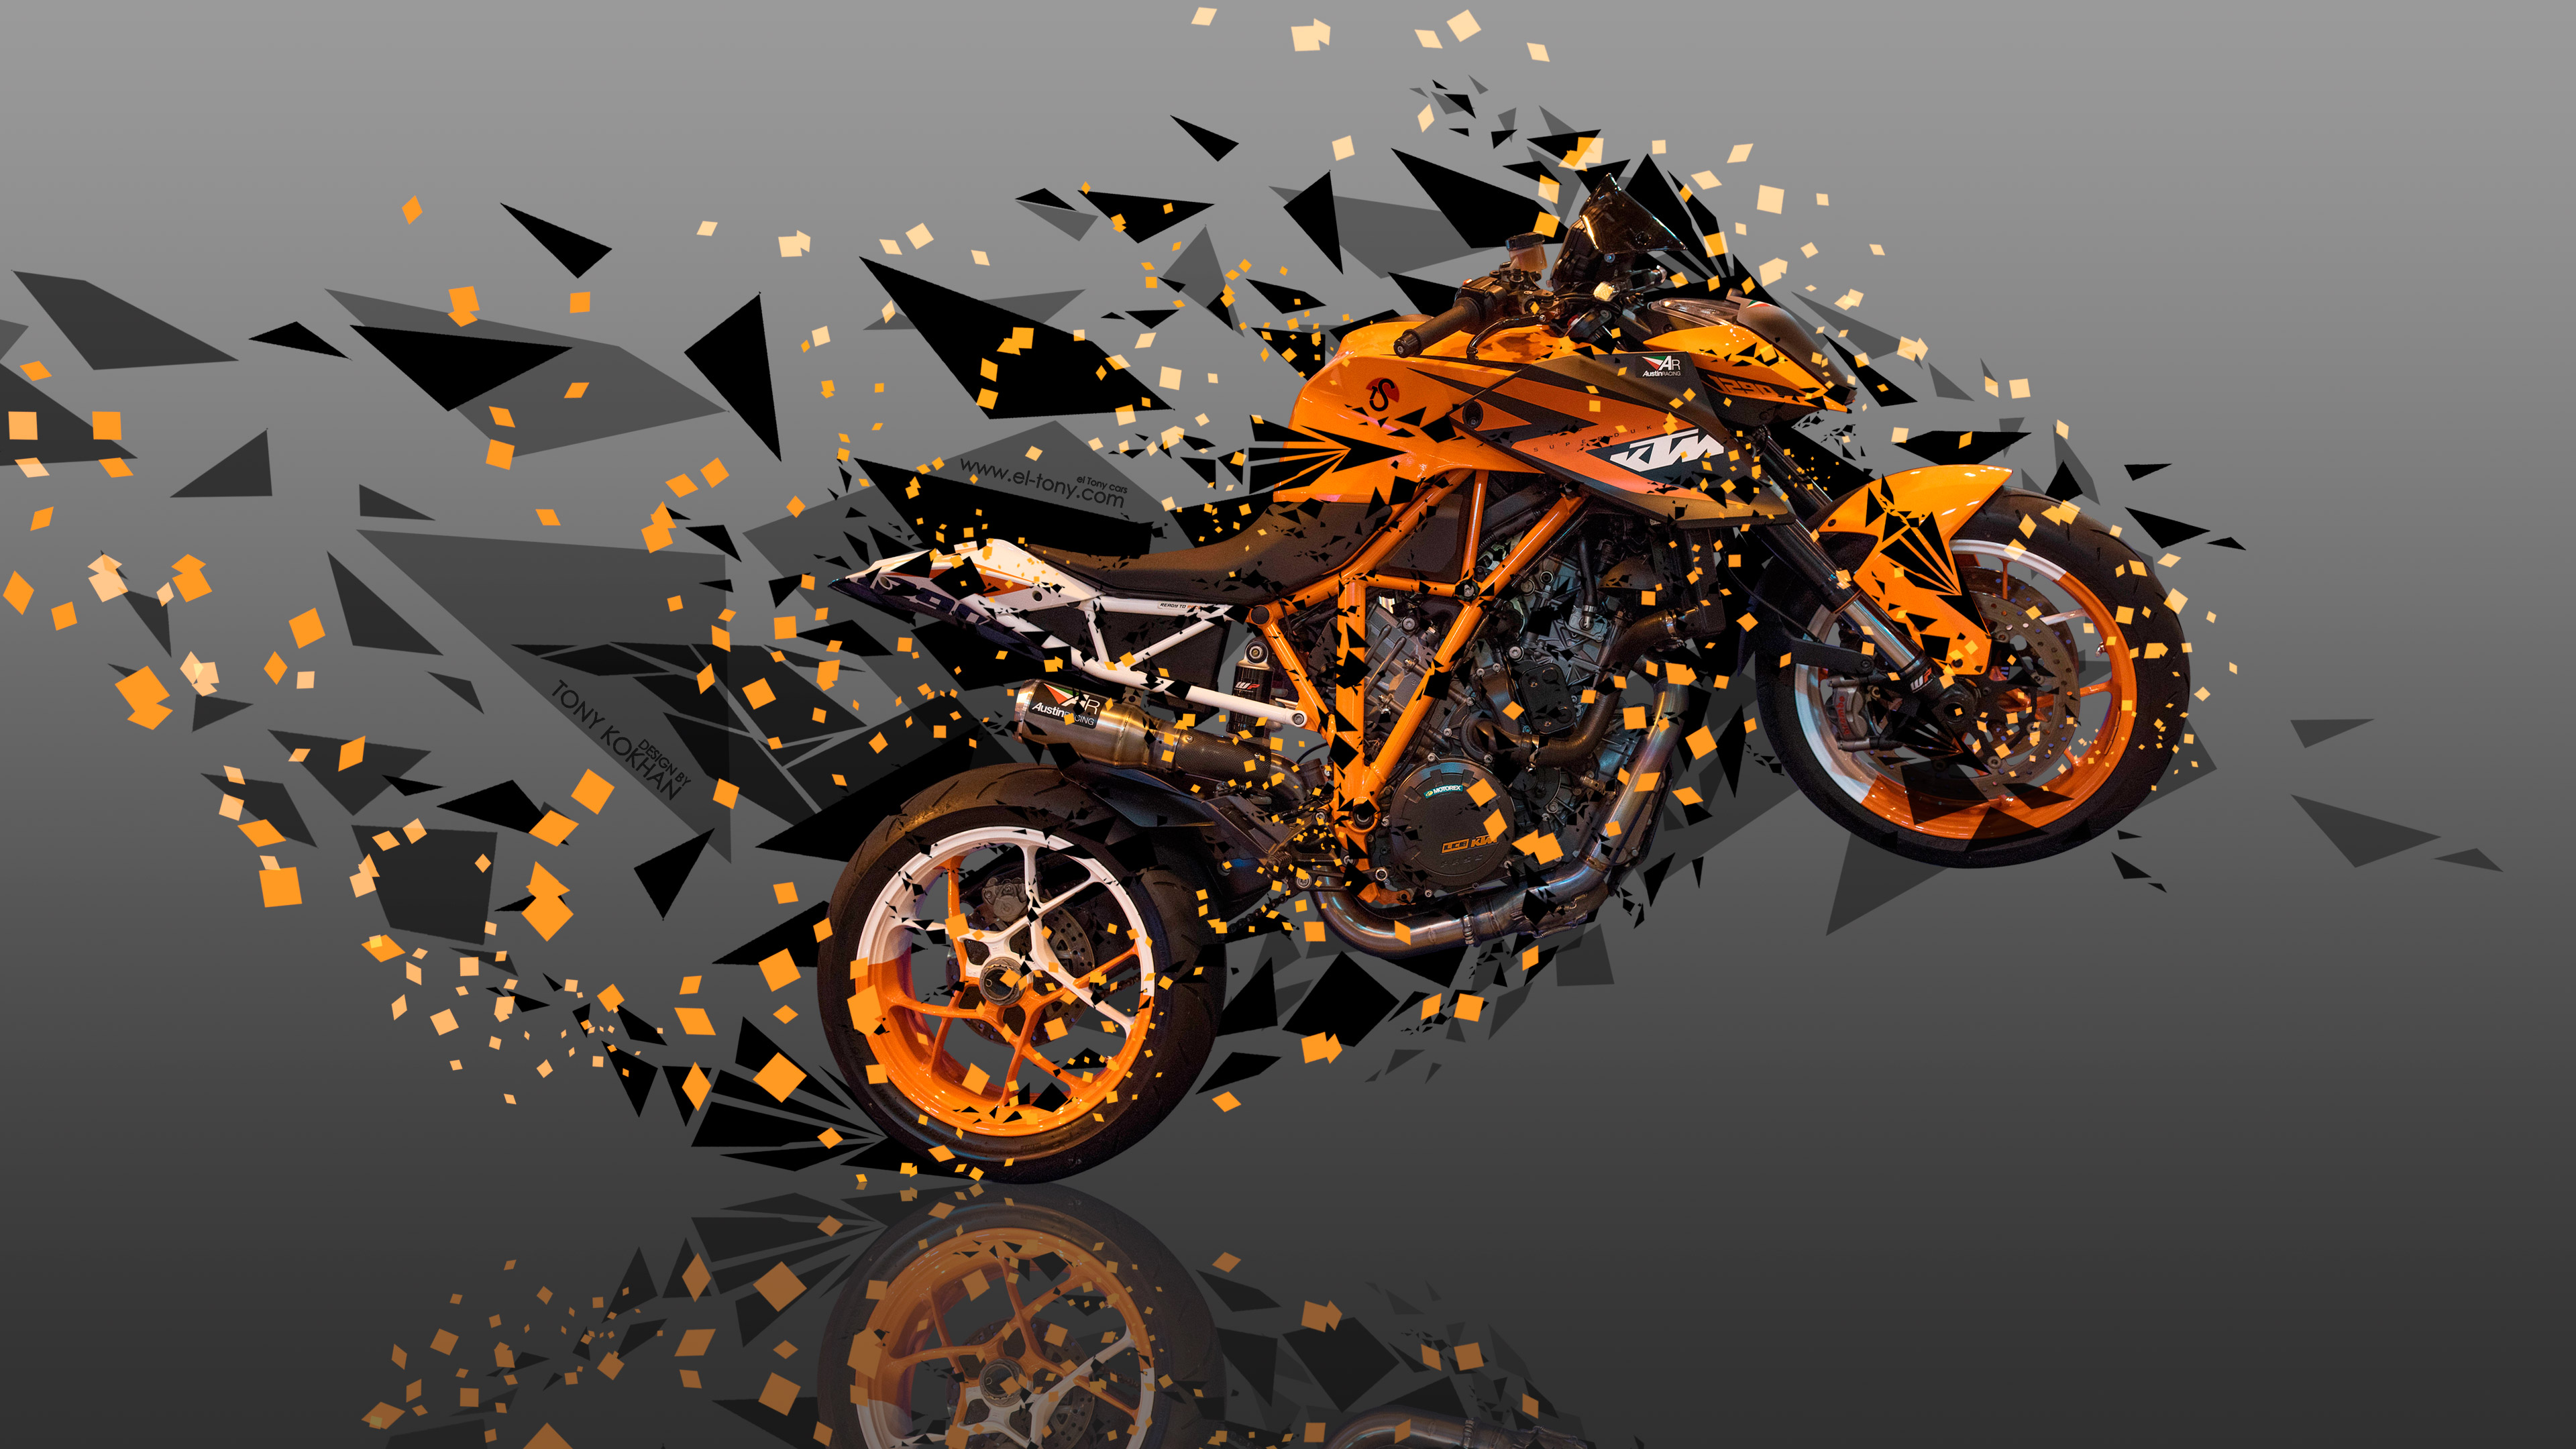 ... Moto KTM LC8 Austin Racing Side Super Abstract Angle Bike 2017